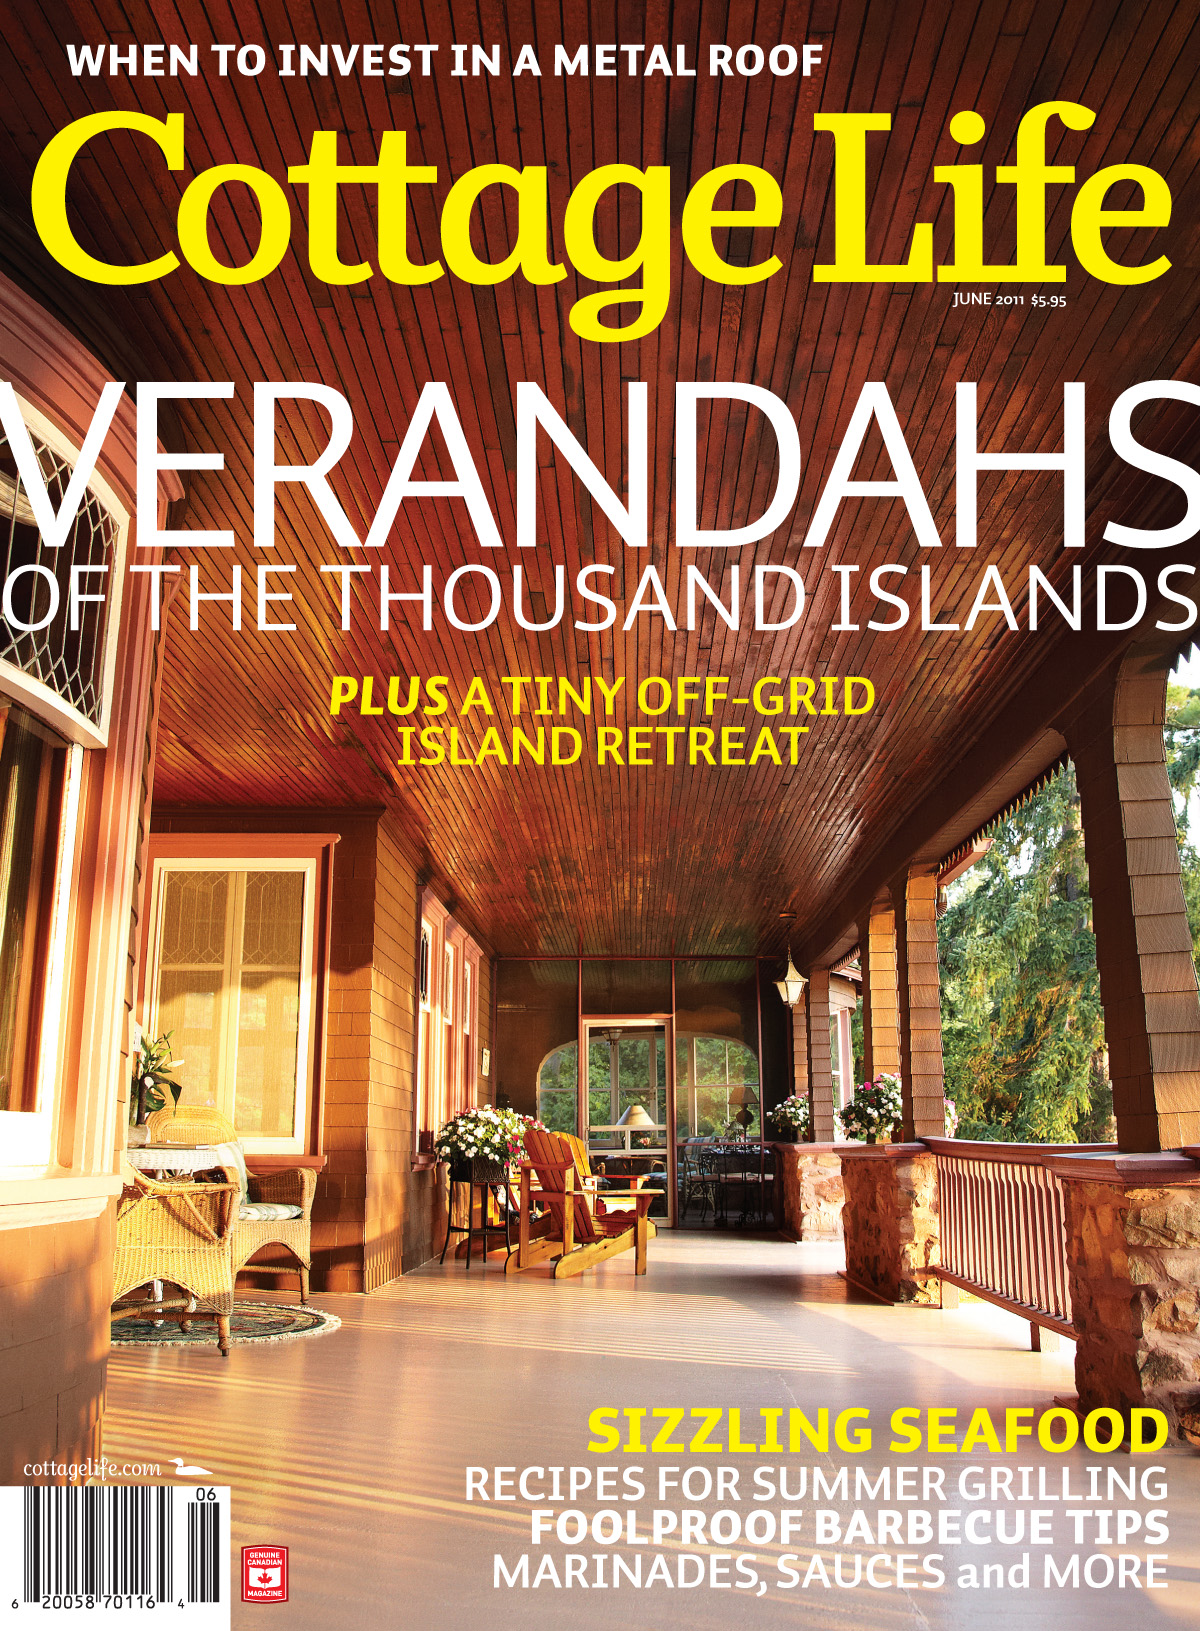 cottage life Cottage life is a canadian magazine focusing on cottage lifestyle content first published in the summer of 1988, the publication features how-to articles, buying.